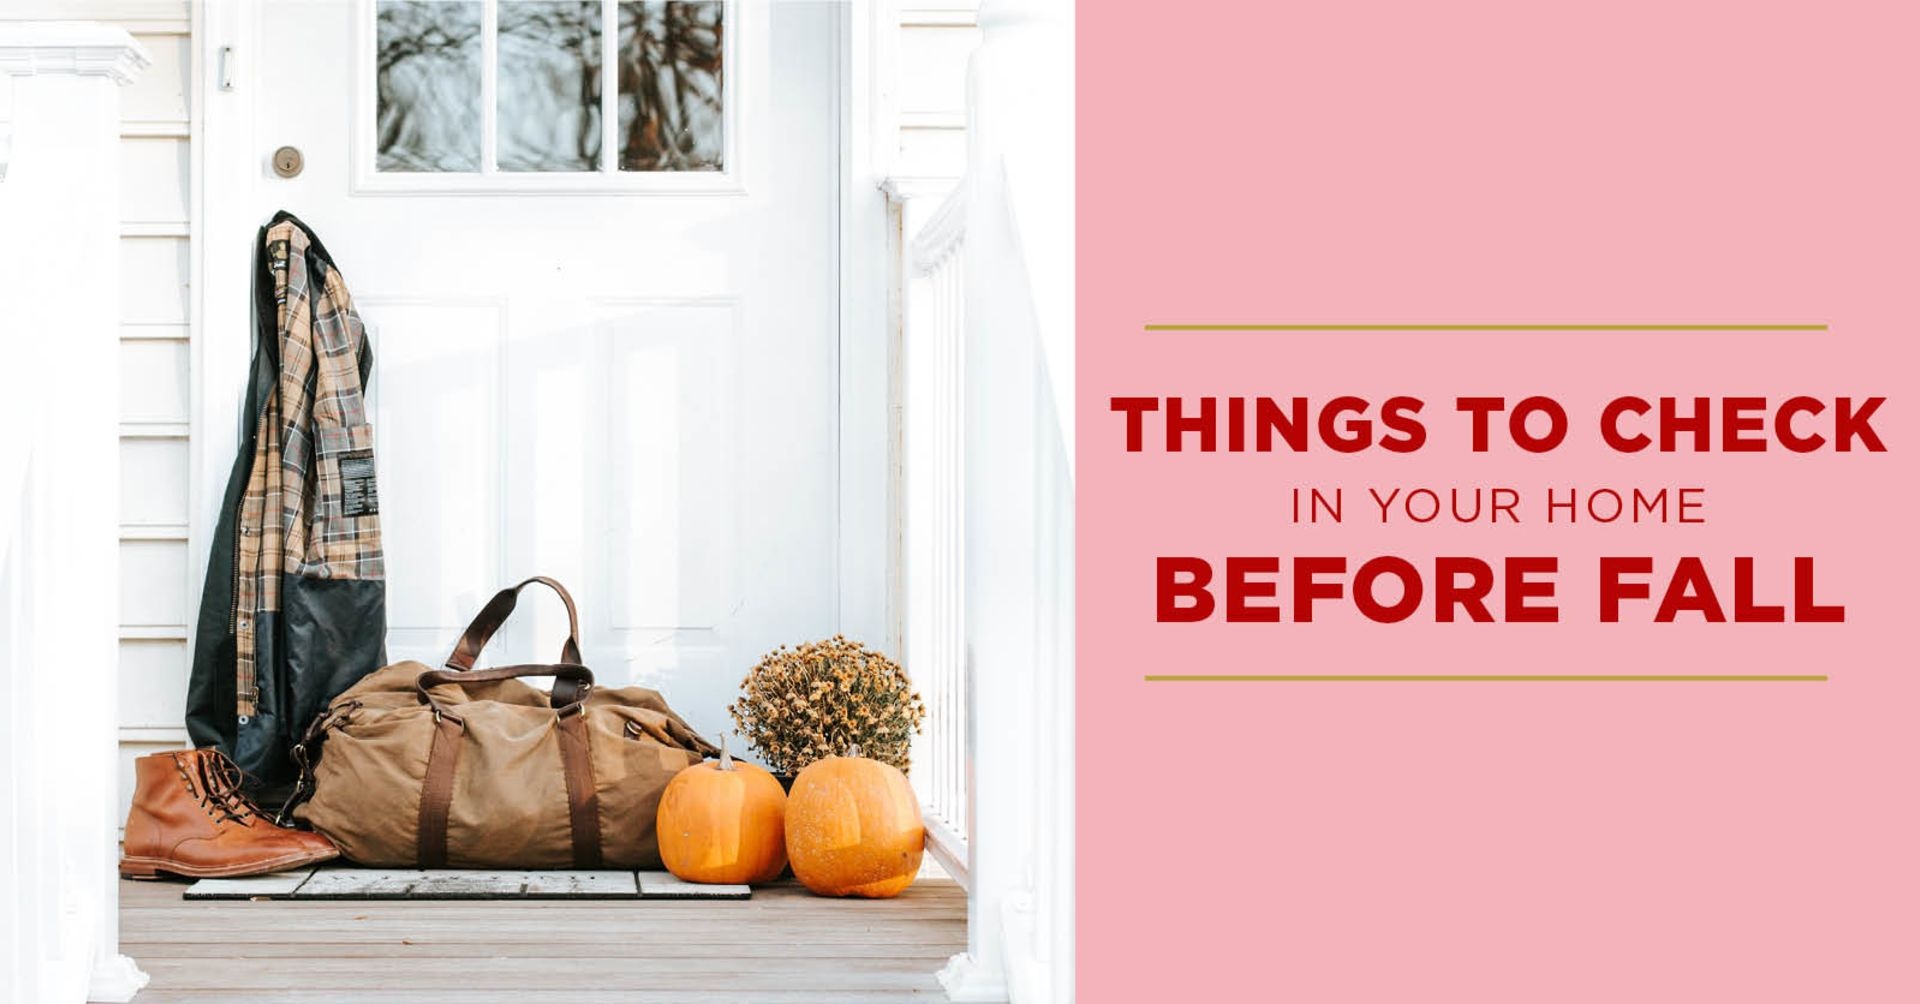 Things To Check In Your Home Before Fall